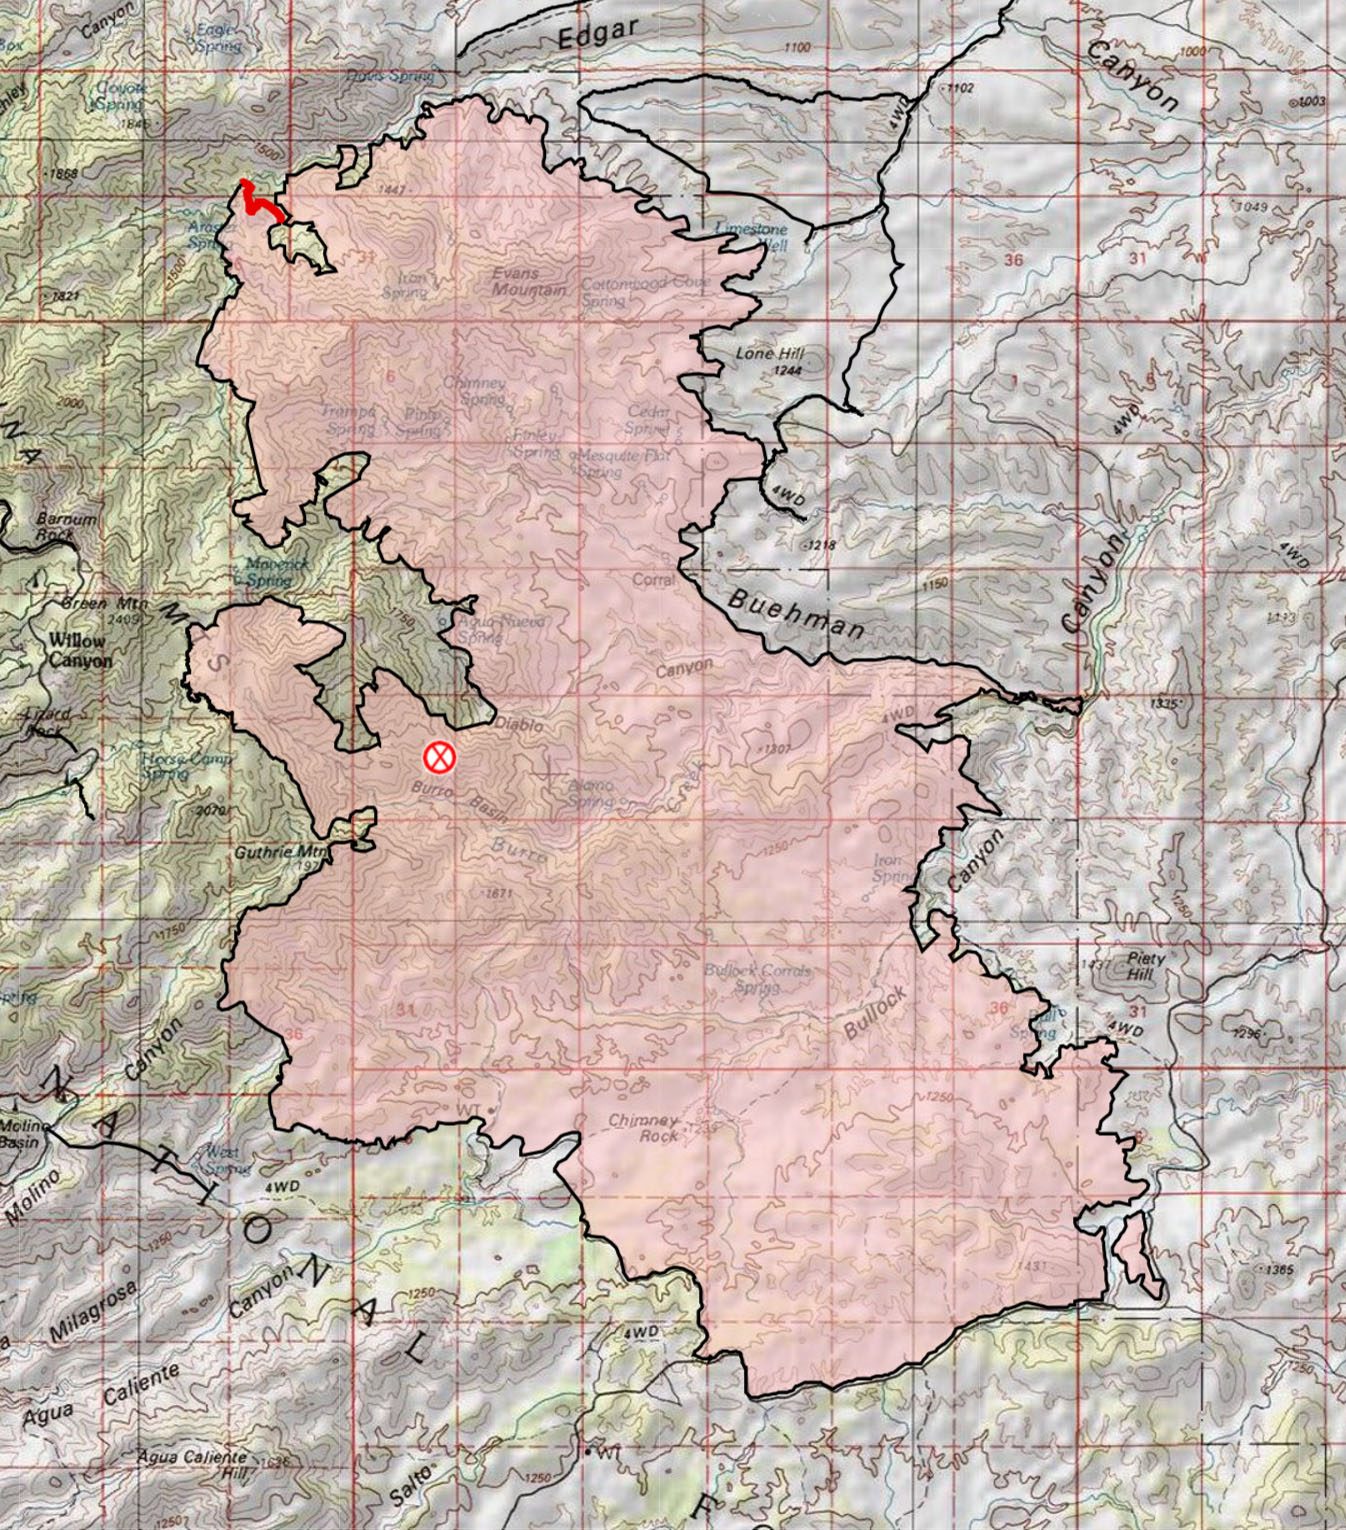 Burro Fire Topo Map - Final Update. July 2017.